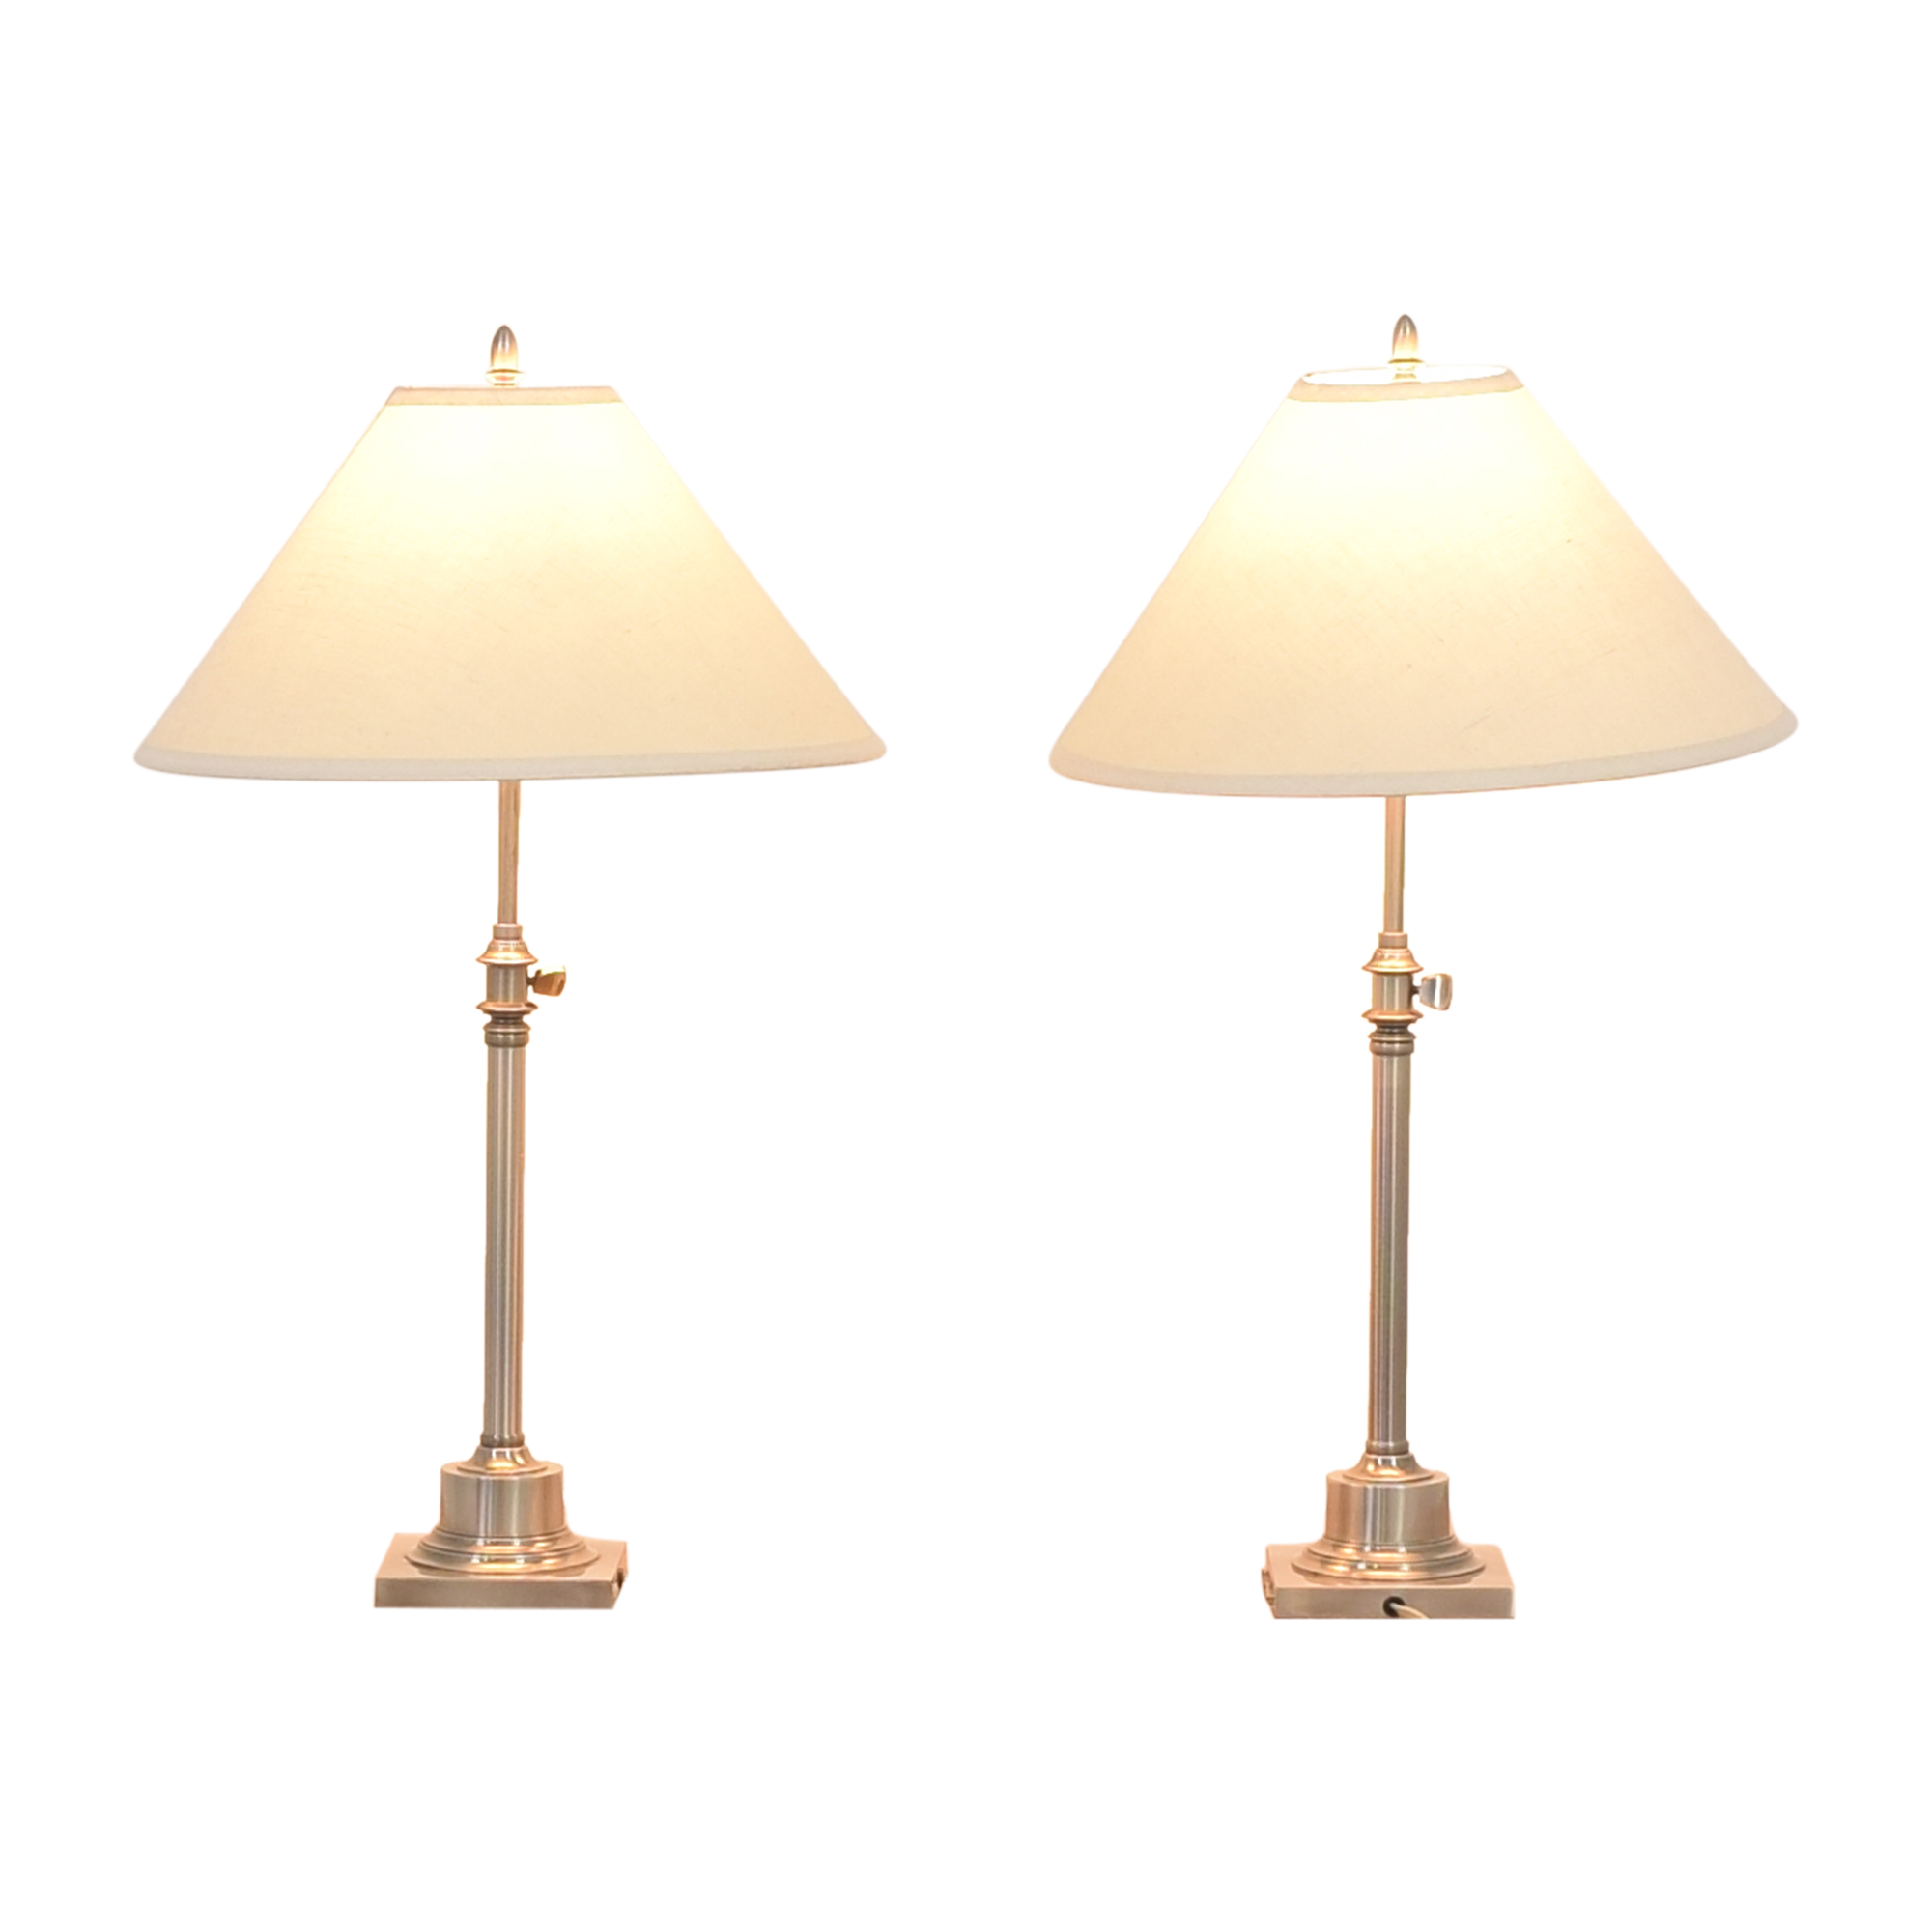 Restoration Hardware Restoration Hardware Adjustable Table Lamps coupon